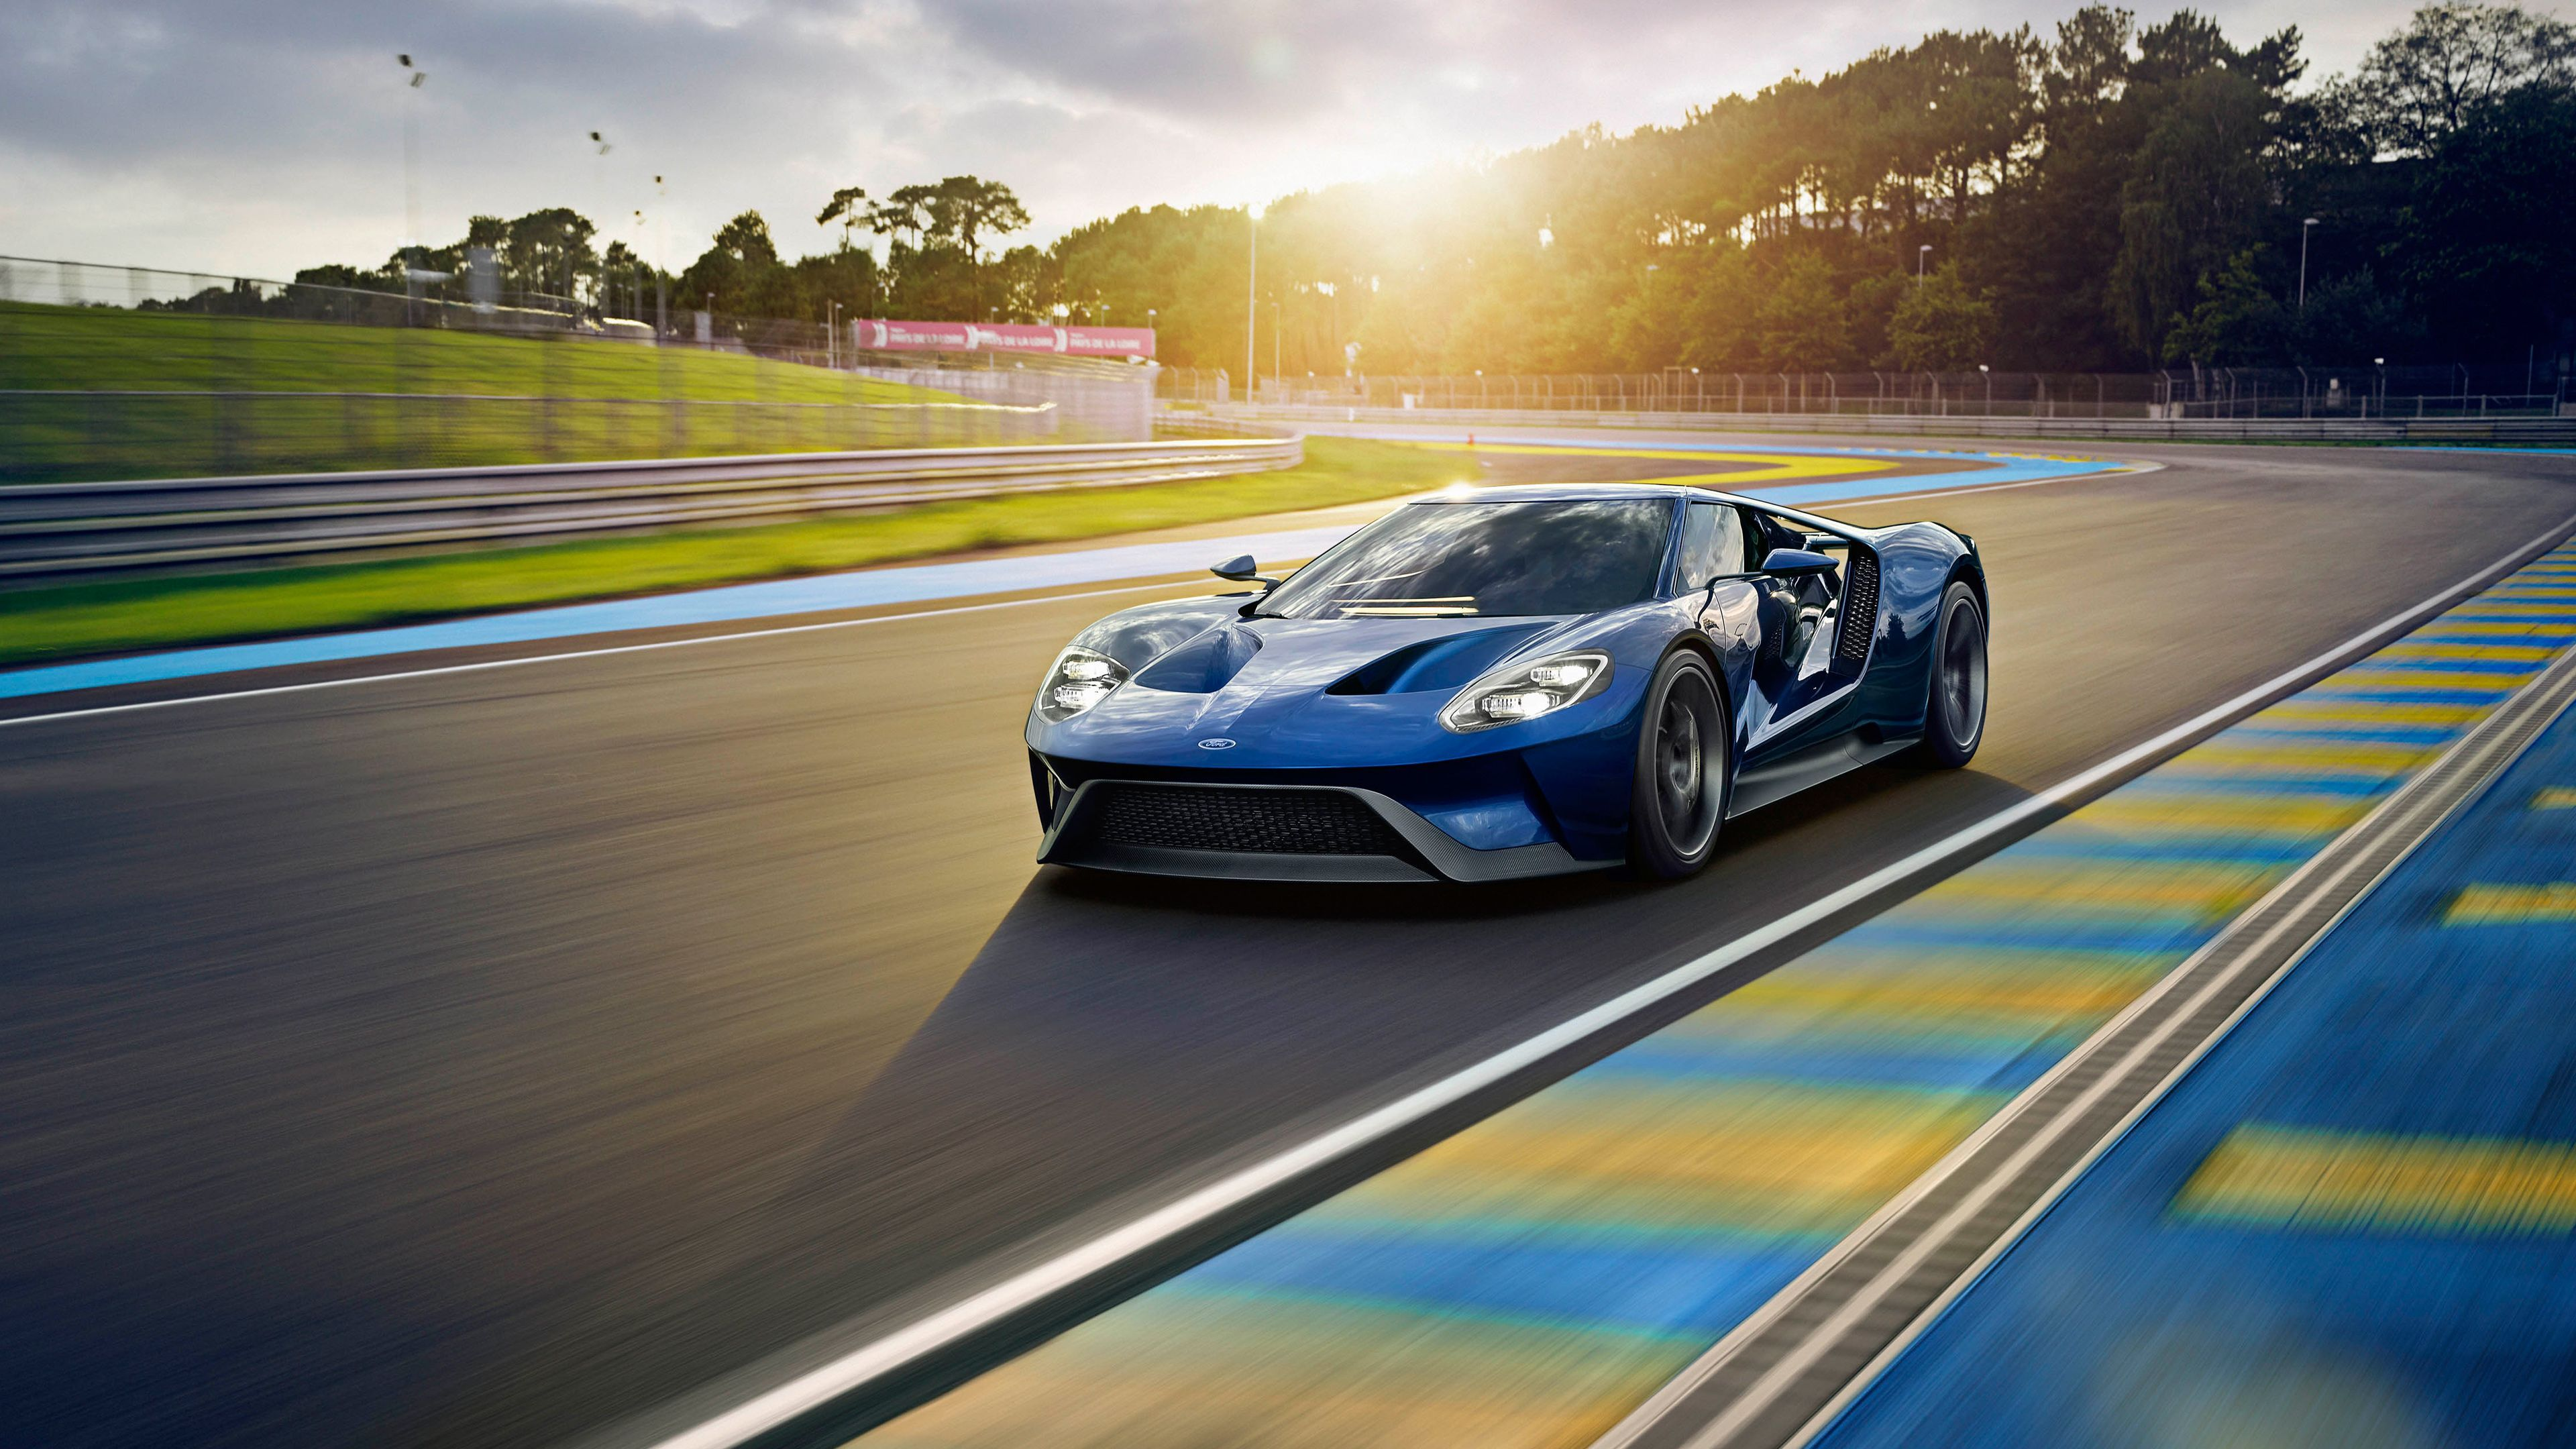 Ford GT Wallpapers - Top Free Ford GT